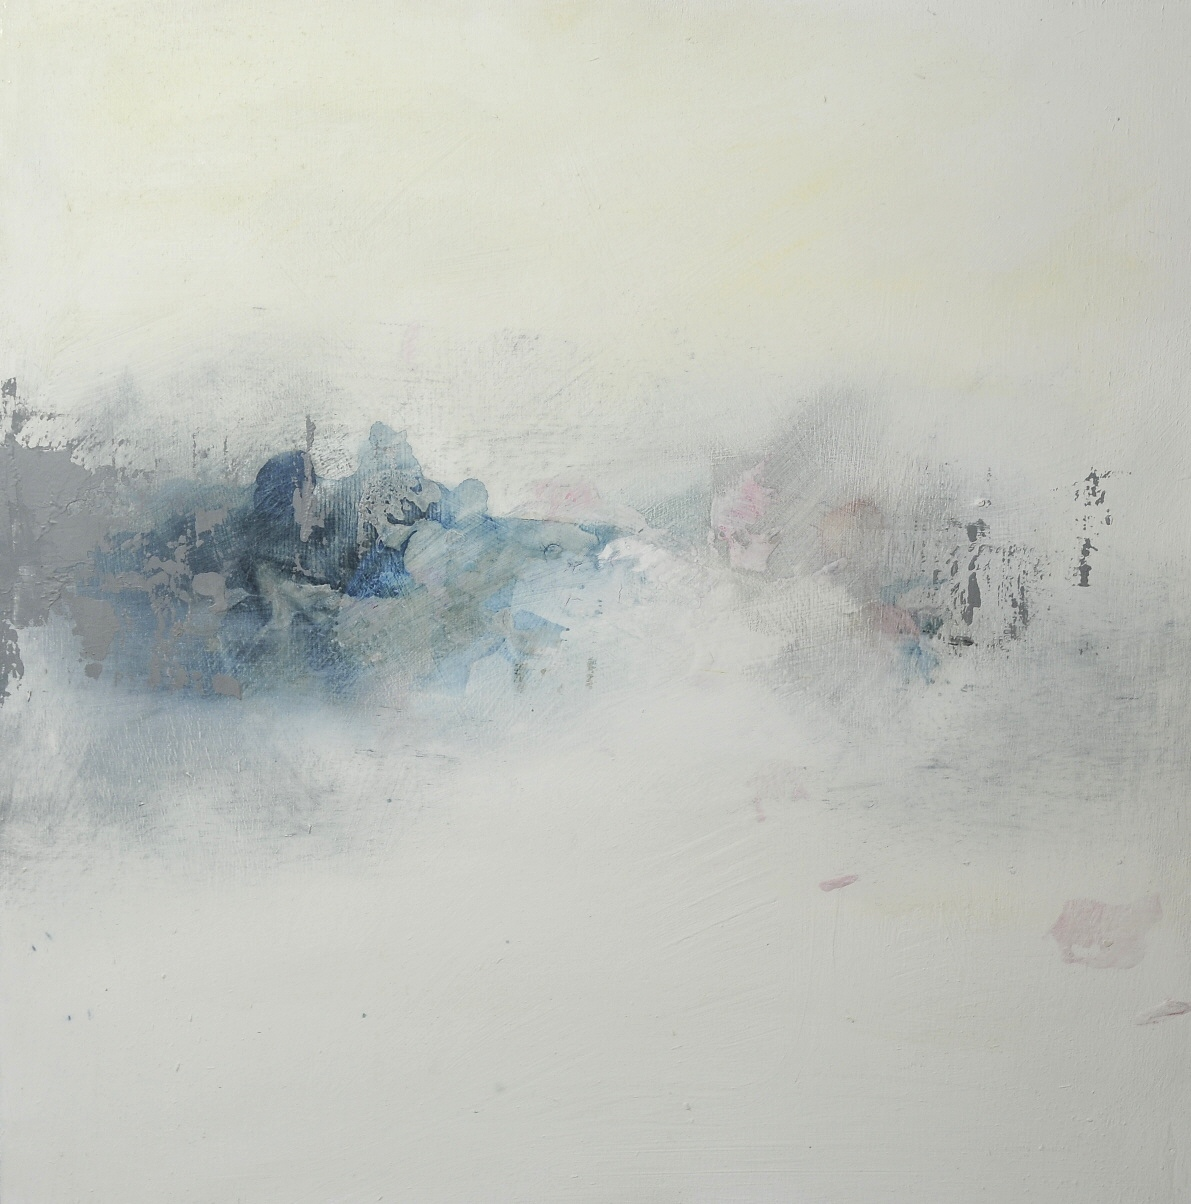 city under siege, mixed media on board